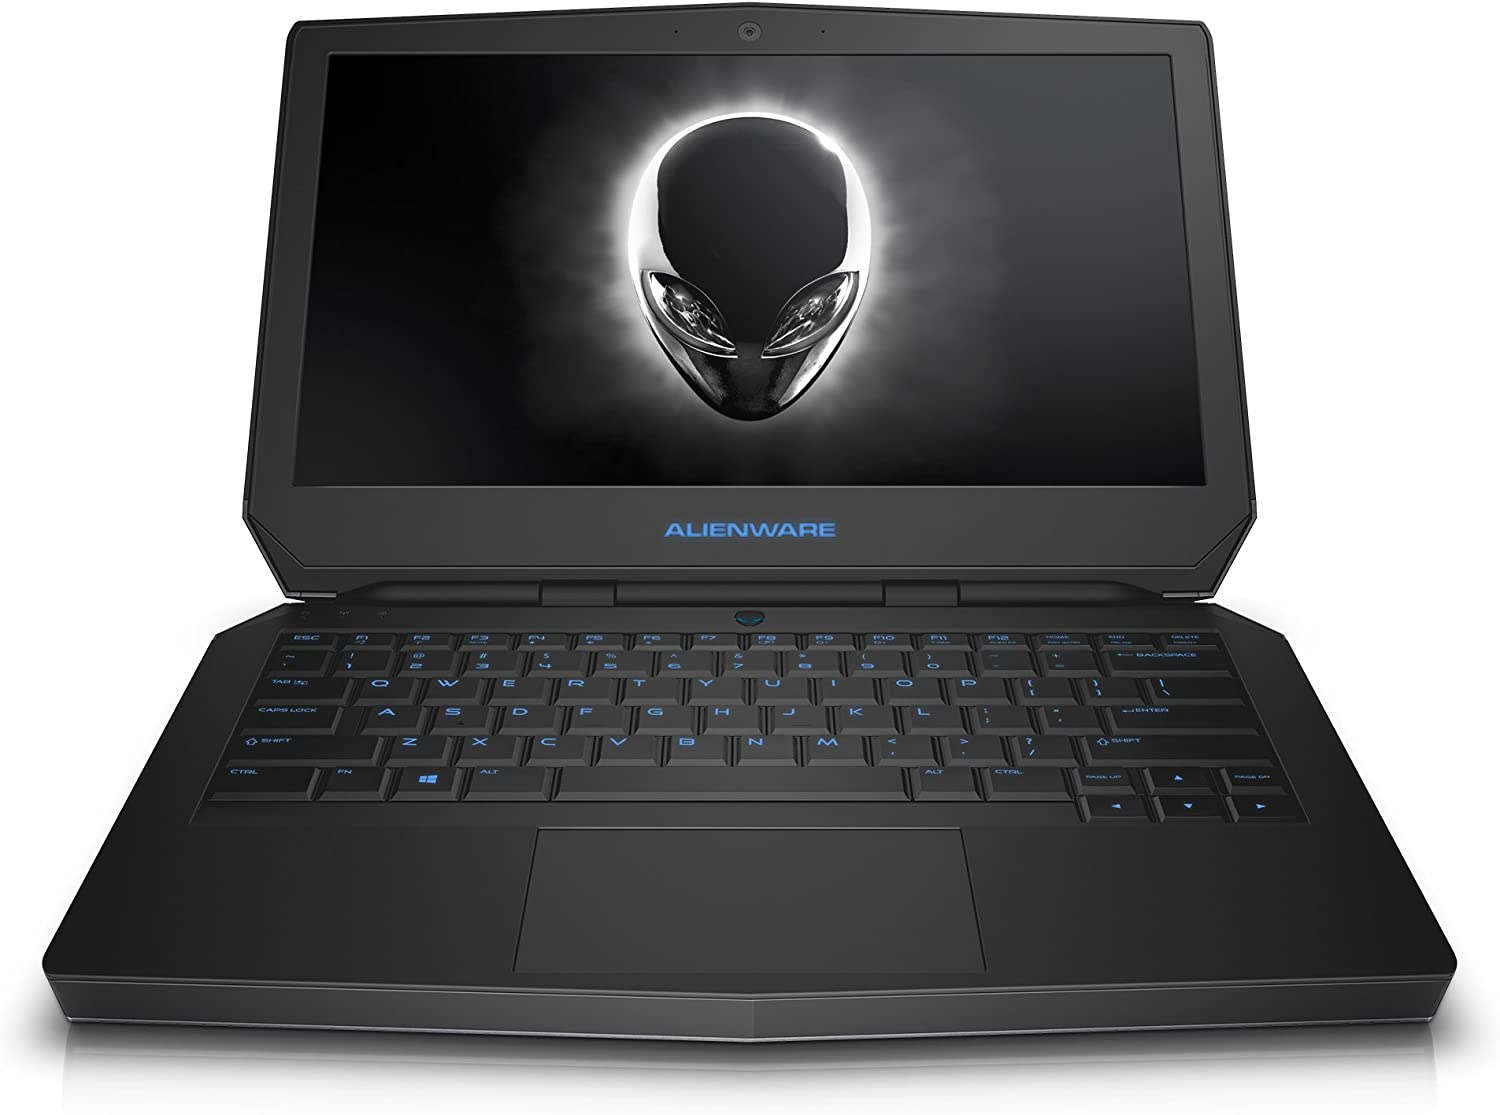 Alienware AW13R2-1678SLV 13 Inch FHD Laptop (6th Generation Intel Core i5, 8 GB RAM, 500 GB HDD + 8 GB SSD) NVIDIA GeForce GTX 960M